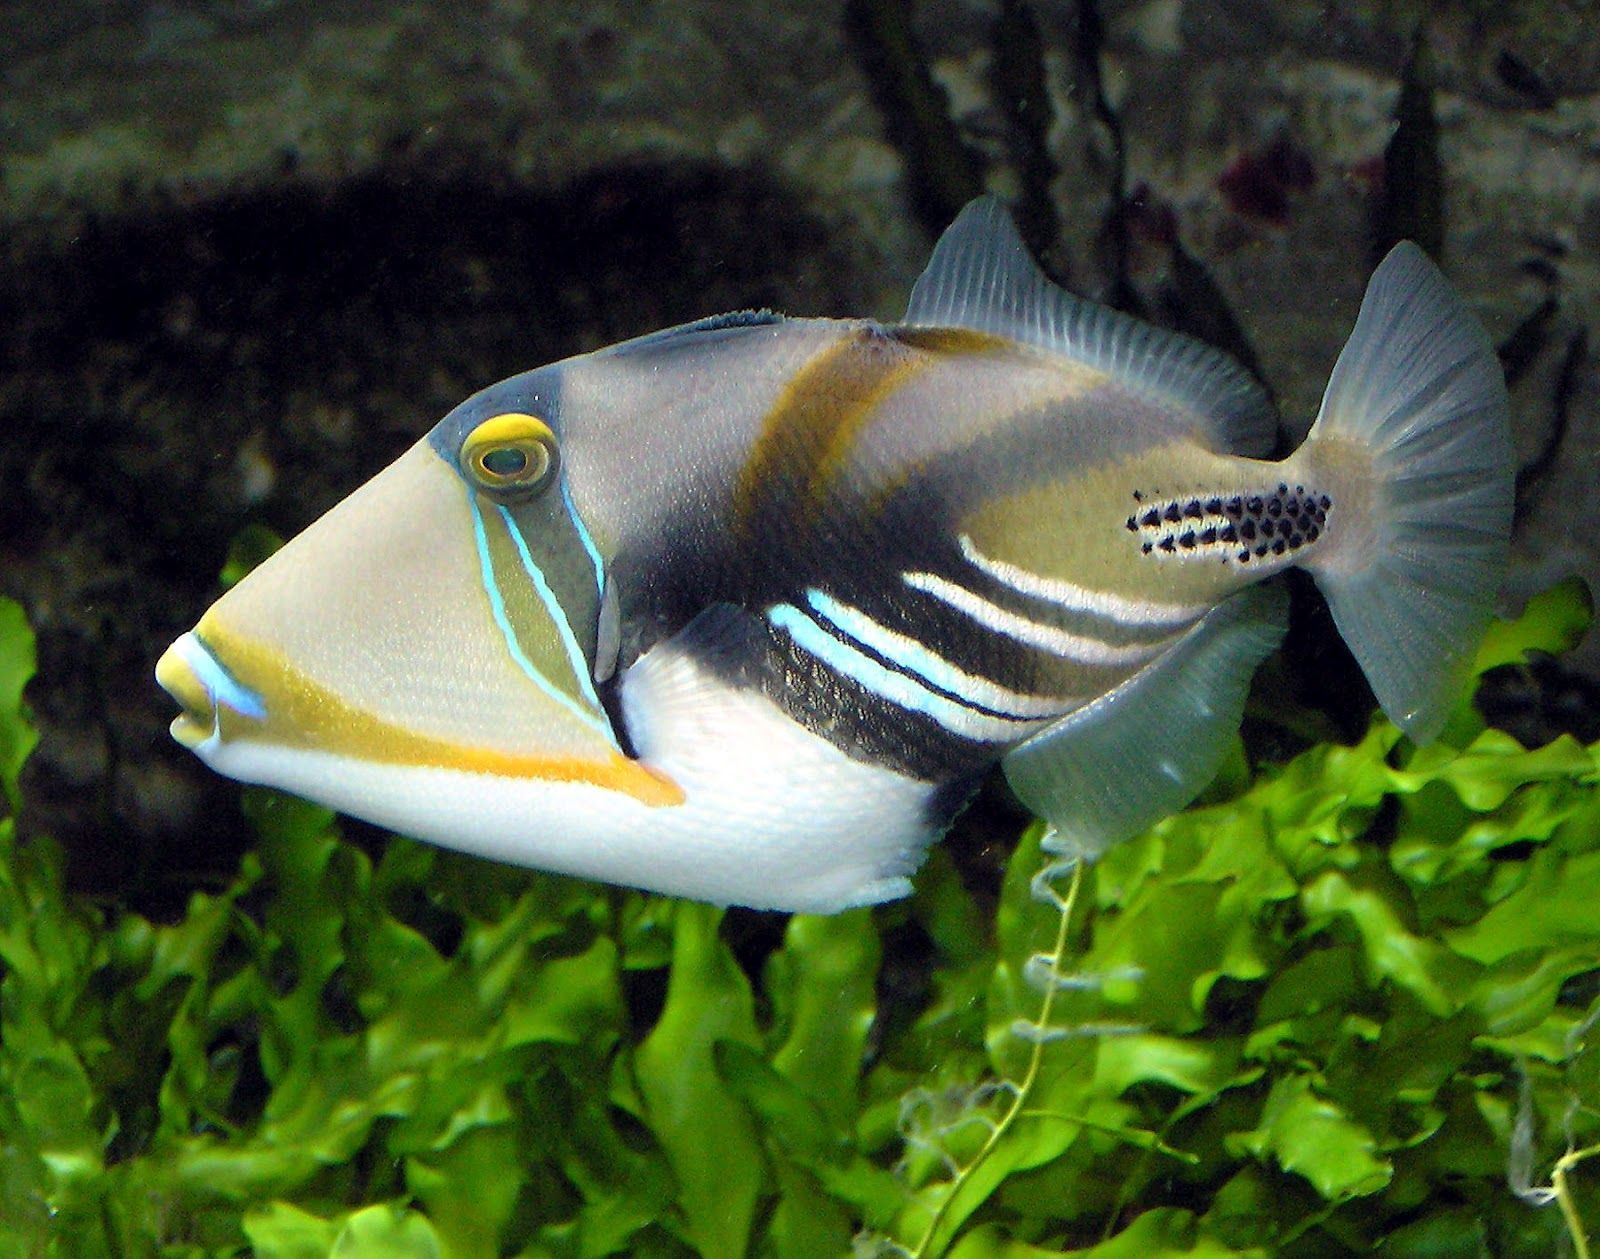 Freshwater fish meaning - Fish